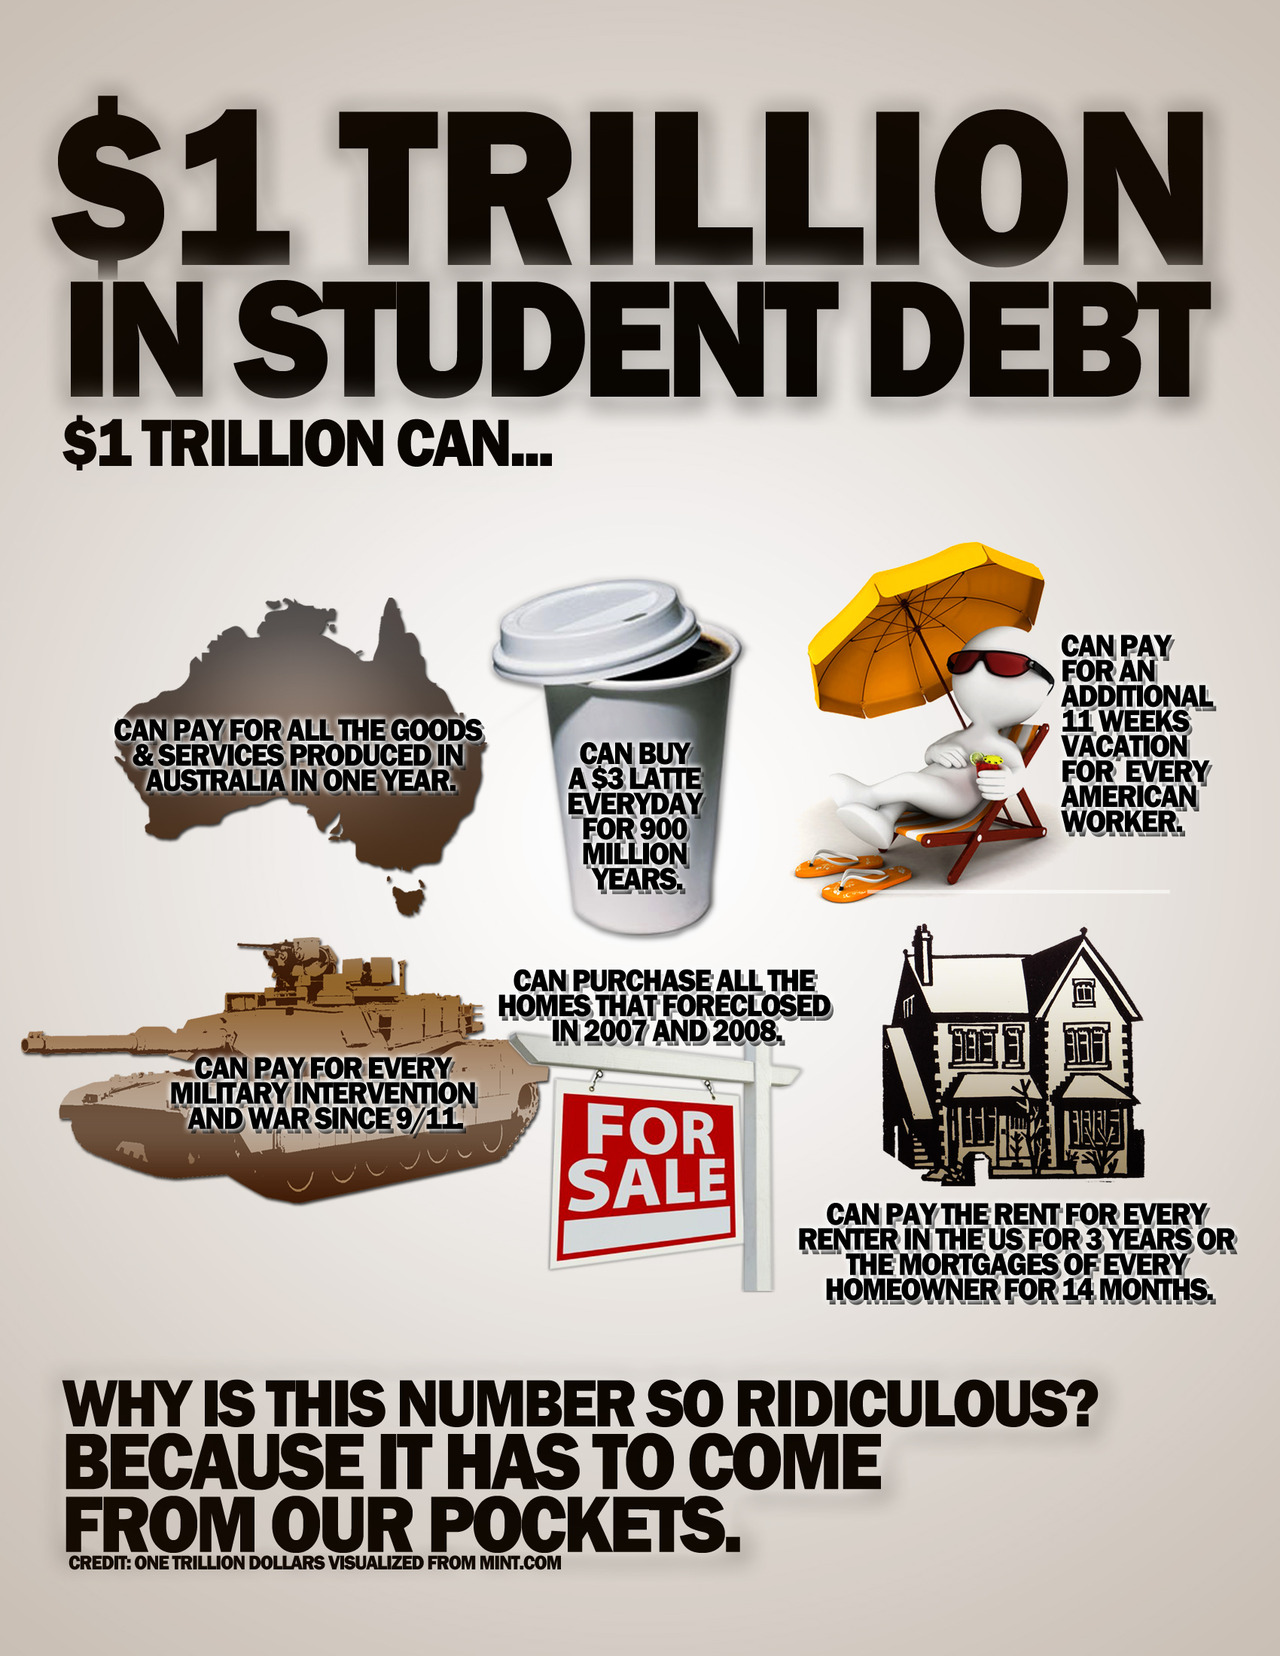 student loans: the financialized economy of indentured servitude